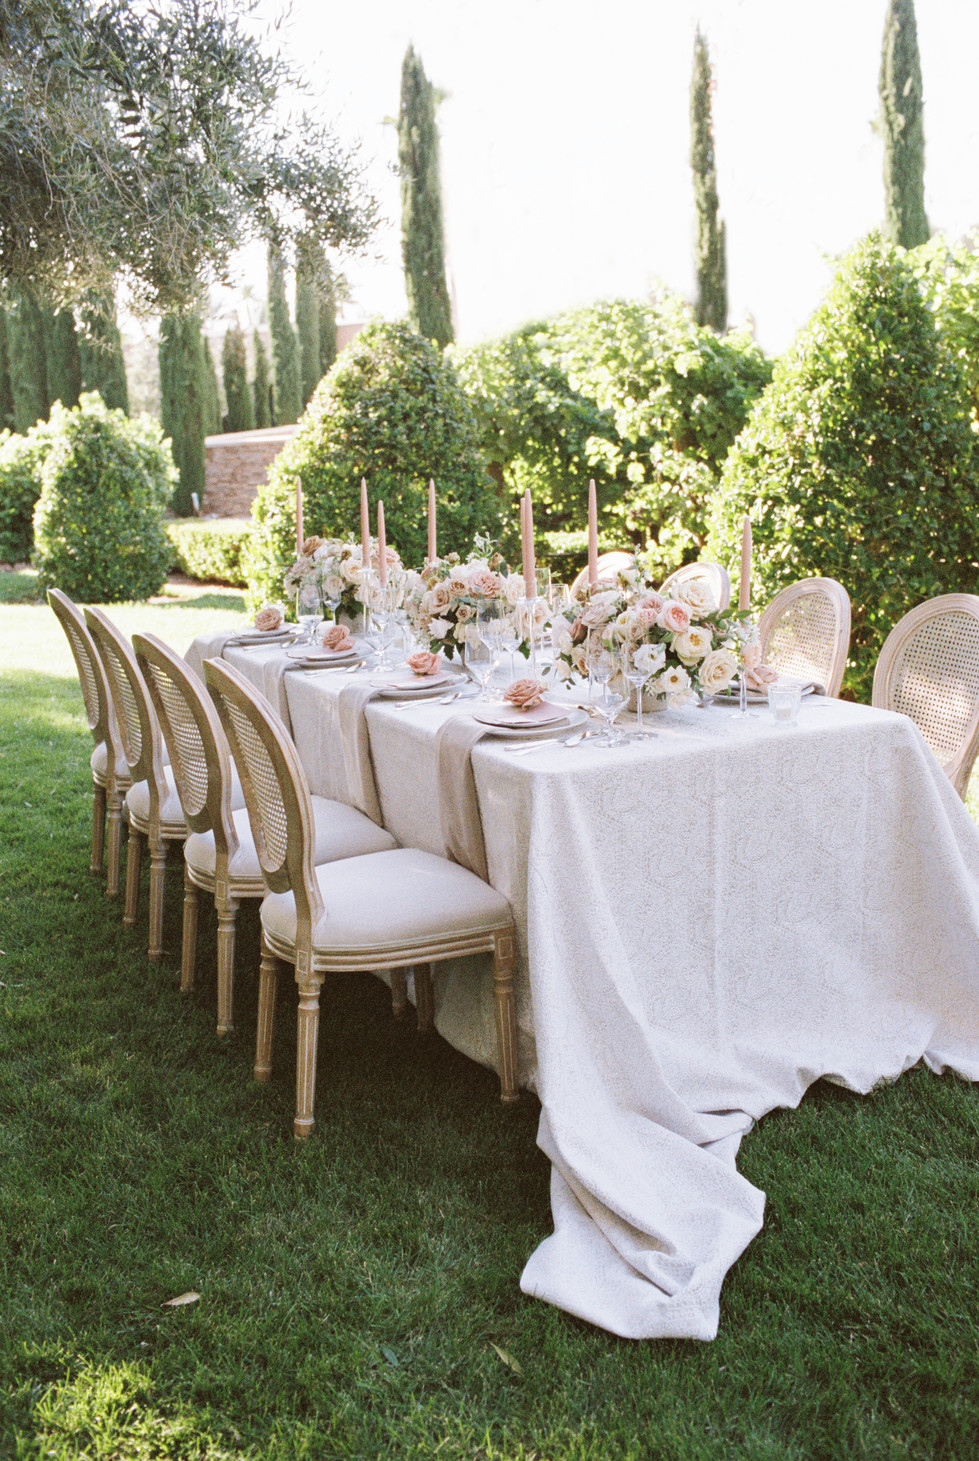 Dusty rose and taupe wedding at Green Valley Ranch Resort. Photo: Lianna Marie